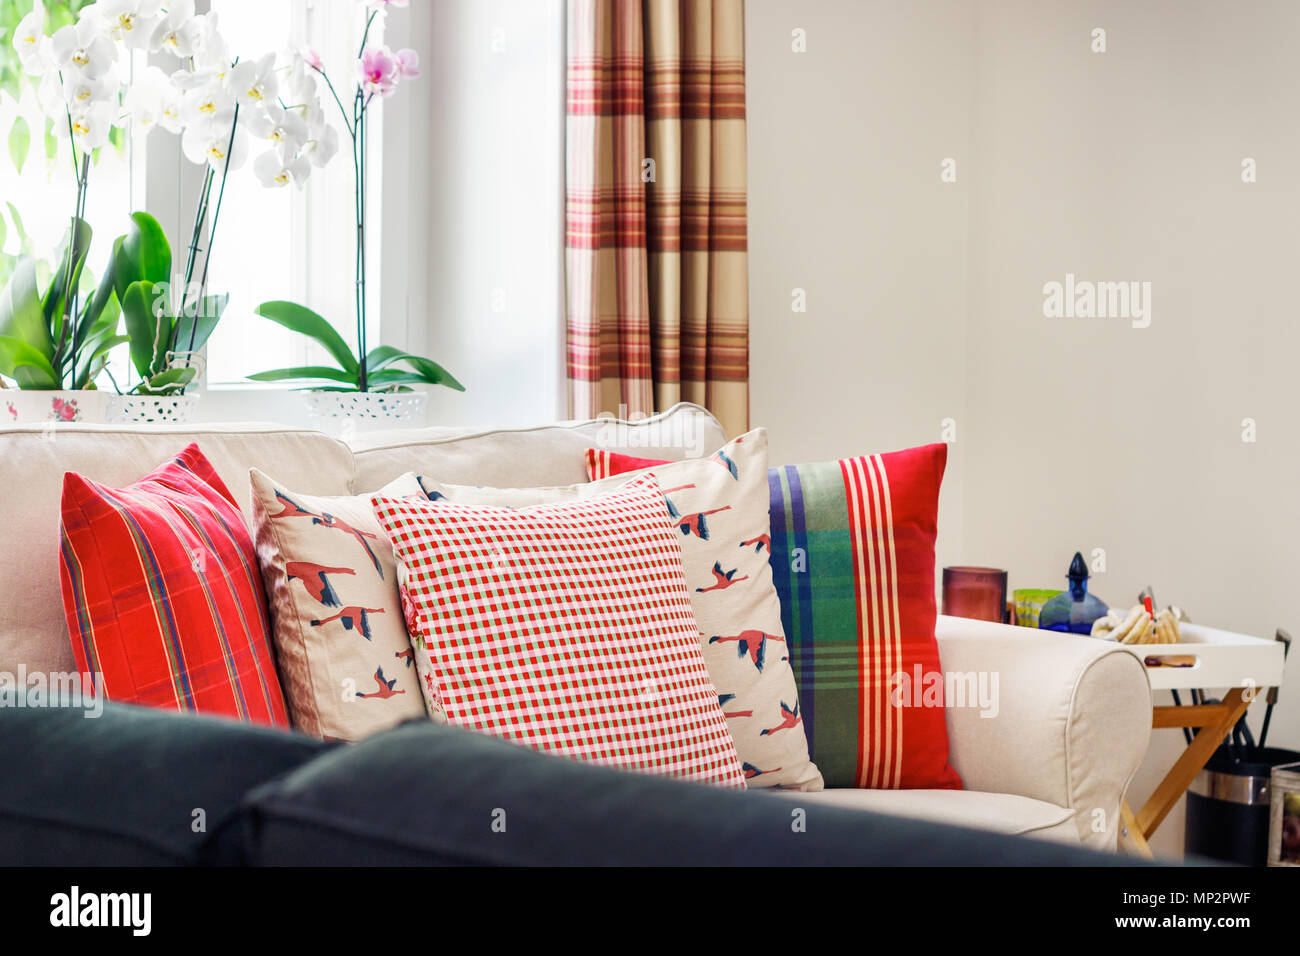 Detail Of A Living Room Interior English Country Style With